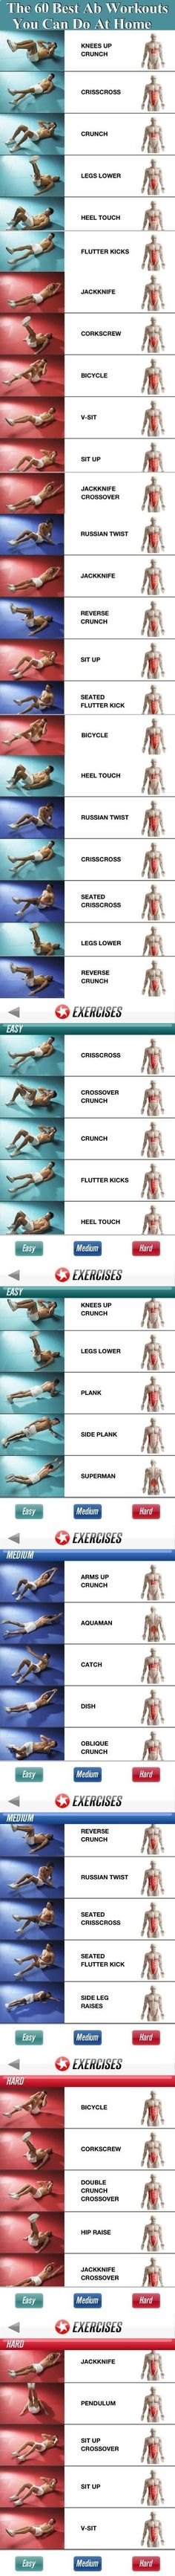 Belly Fat Workout - The 60 Best Ab Workouts You Can Do From Home Pictures, Photos, and Images for Facebook, Tumblr, Pinterest, and Twitter: Do This One Unusual 10-Minute Trick Before Work To Melt Away 15+ Pounds of Belly Fat